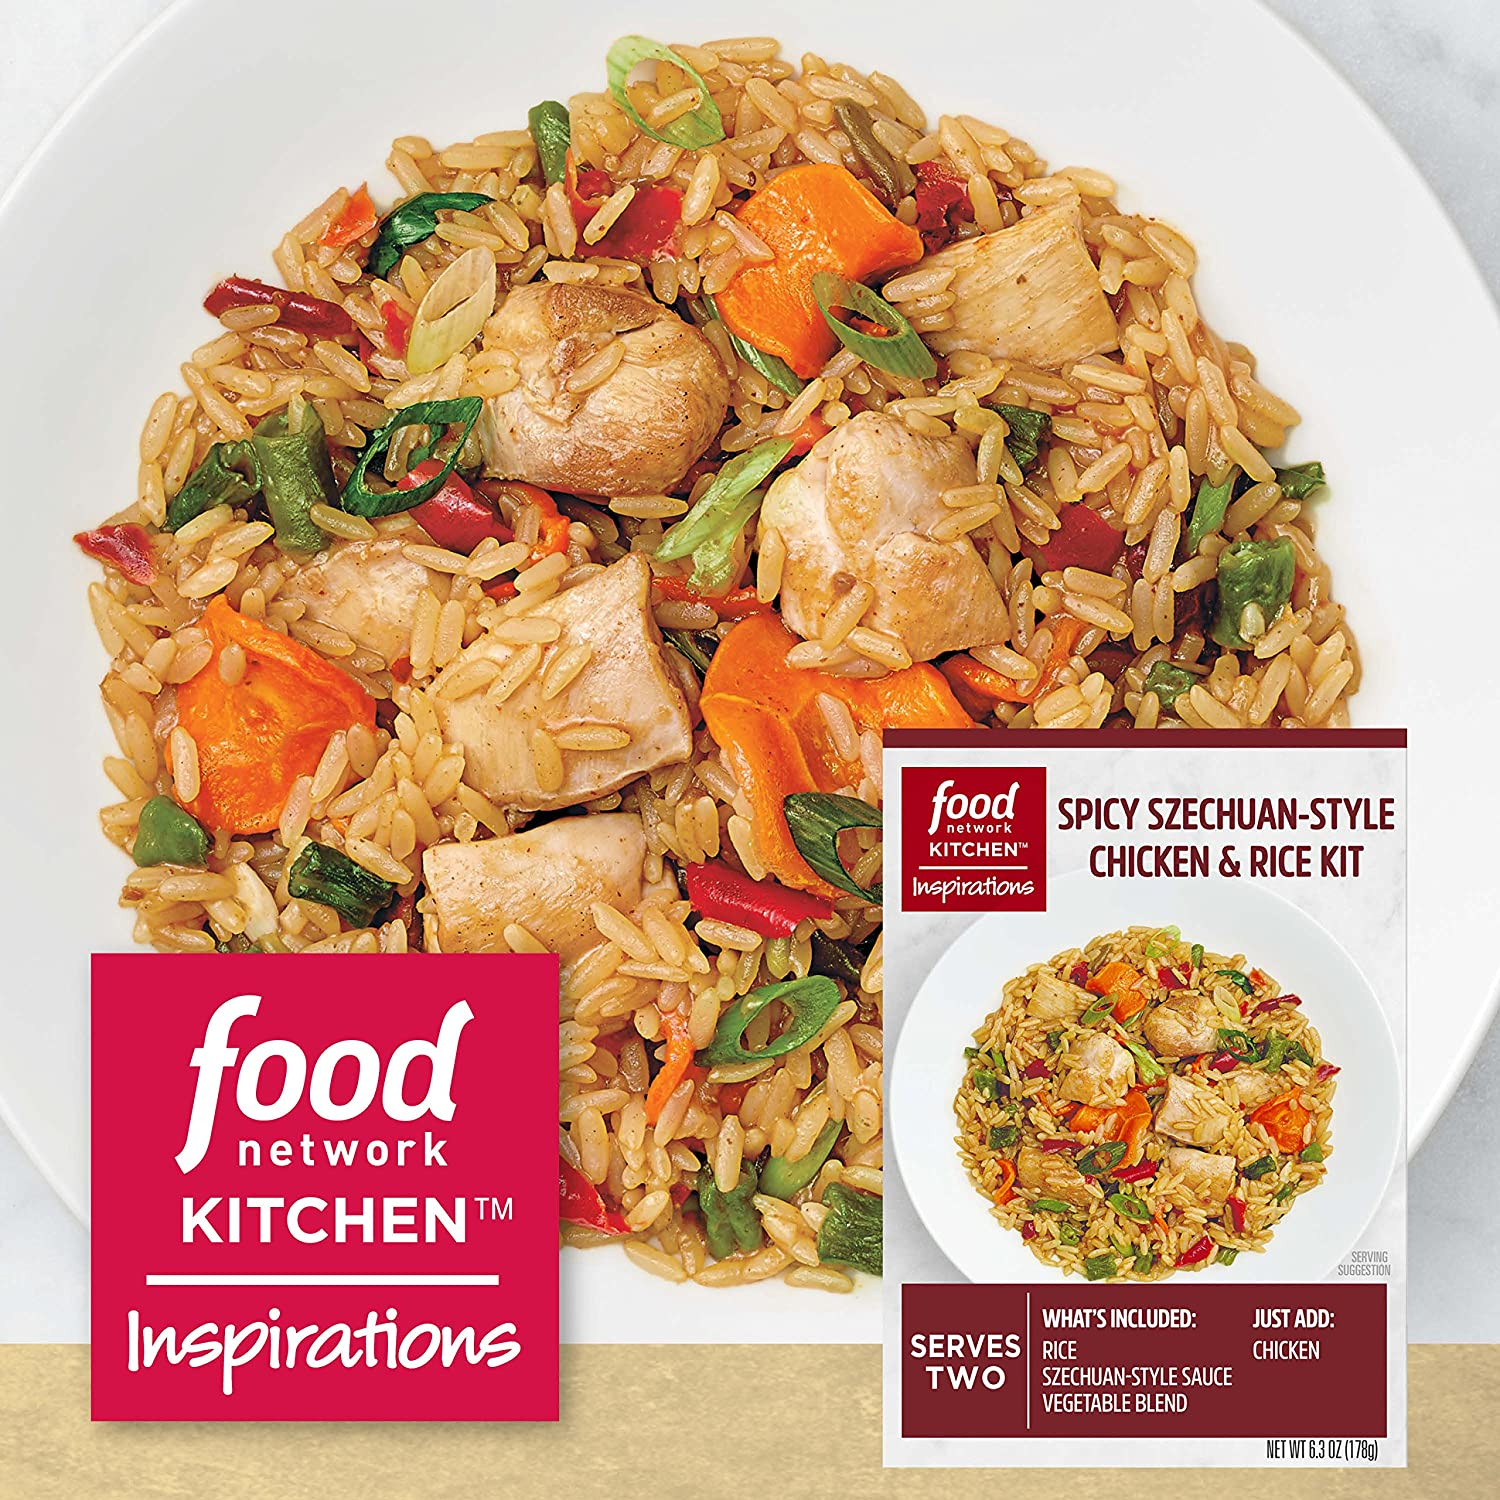 Amazon food network kitchen inspirations spicy szechuan style amazon food network kitchen inspirations spicy szechuan style chicken rice meal kit 63 oz grocery gourmet food forumfinder Images